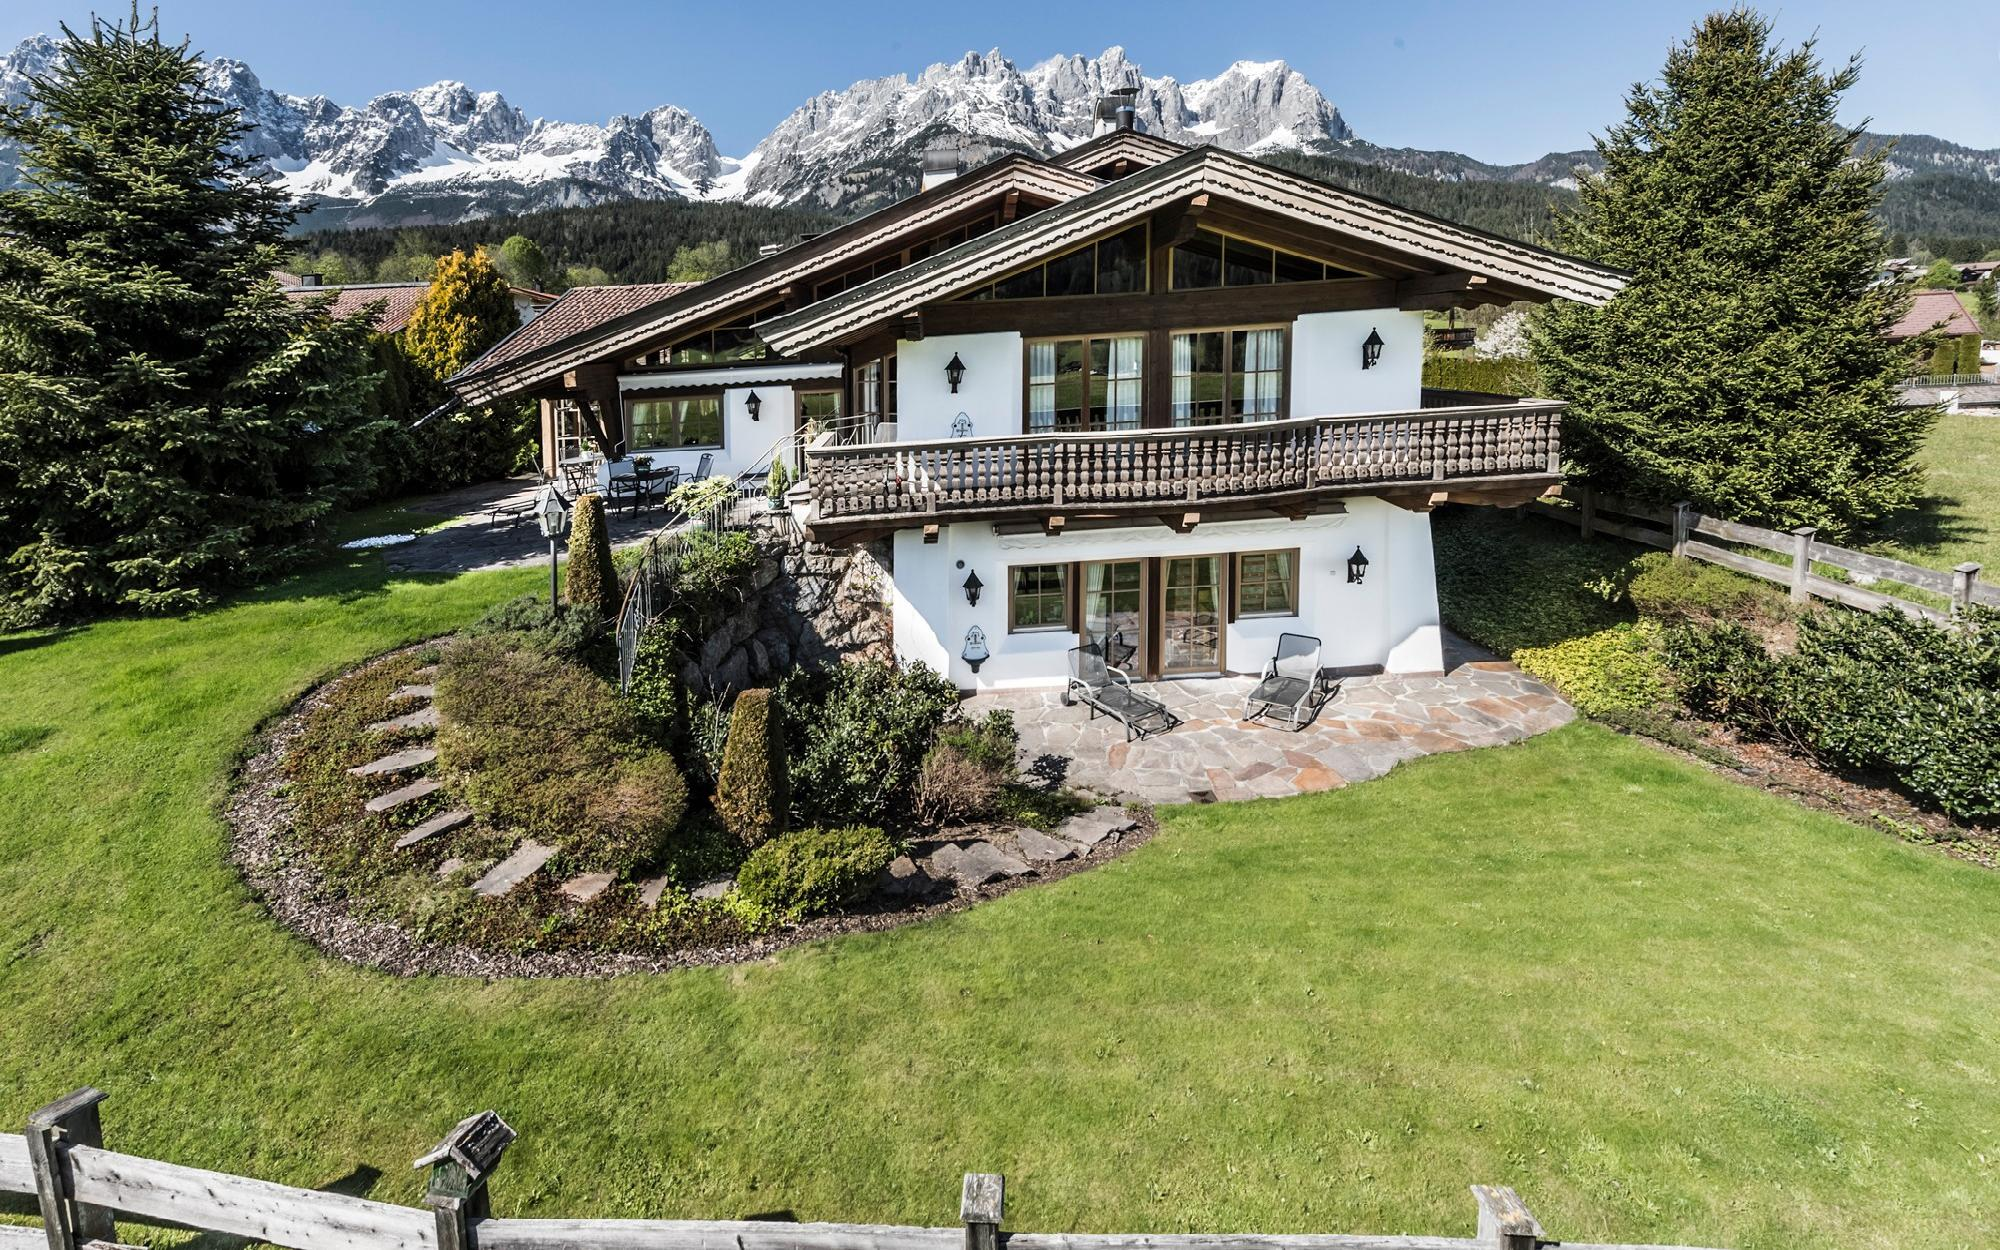 Bienes Raíces en Austria - Tyrolean Traditional Chalet in a prime location of Going